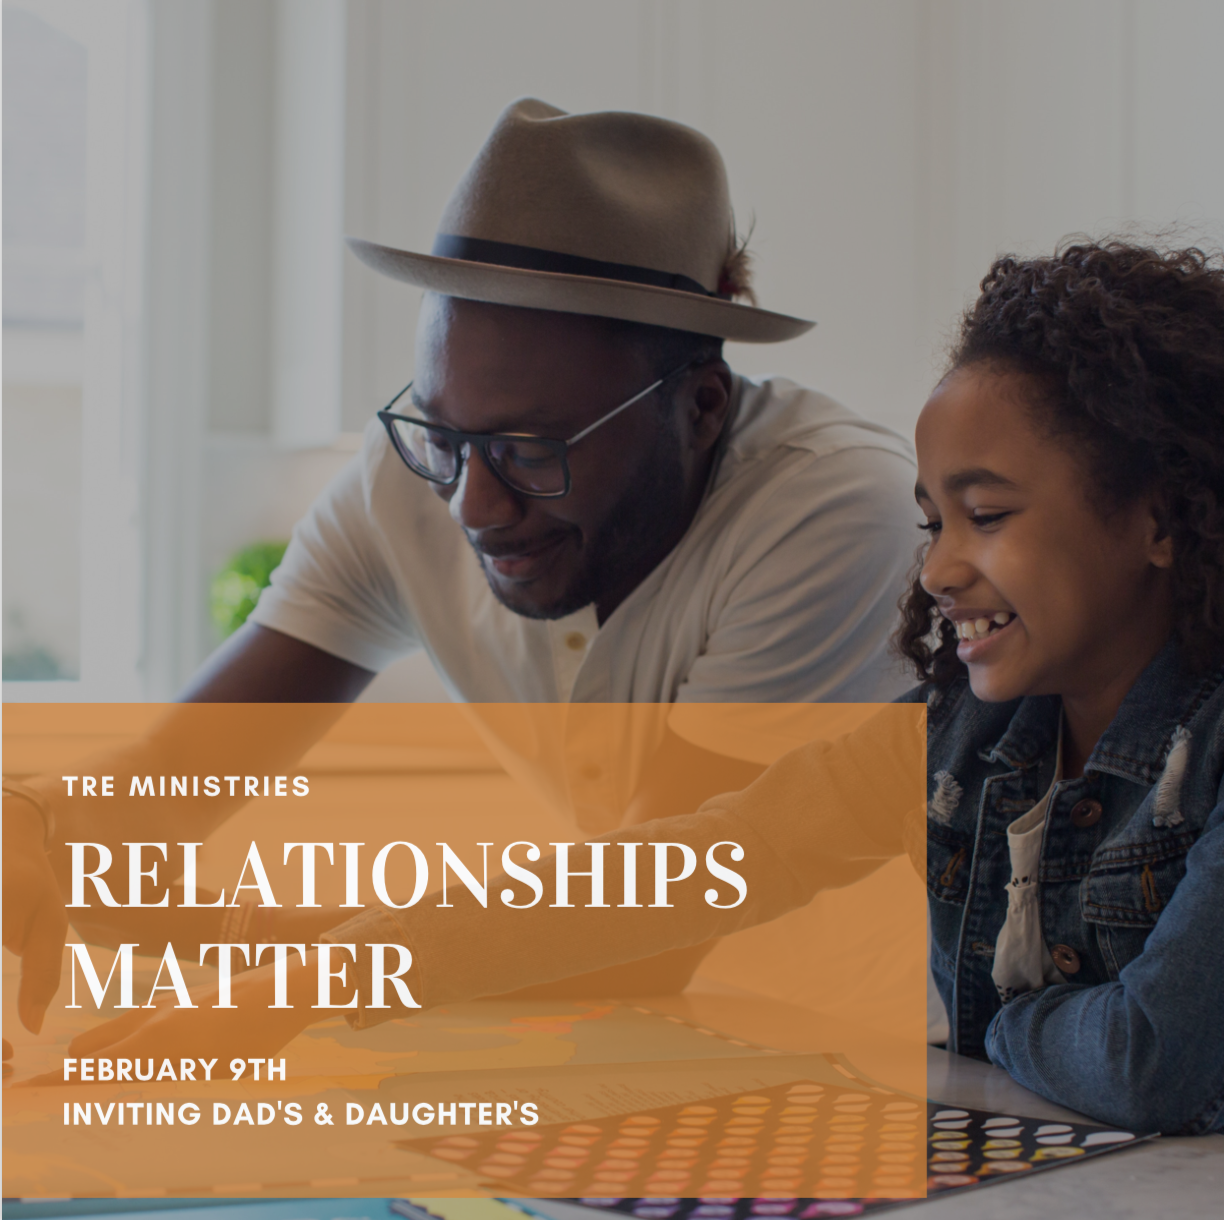 Sustaining healthy relationships is important to all of our lives. To enhance your relationships with those who matter most, we will be hosting 'Relationships Matter' once a month.  Our first Relationships Matter event will be held on February 9th from 10am-12pm. We are welcoming in Dads and Daughters to an open space where you can spend time investing in your relationship. The hot chocolate and topic questions will be provided. Spend the morning investing in creating a deeper, more impactful relationship with those who matter most.  All ages welcome!